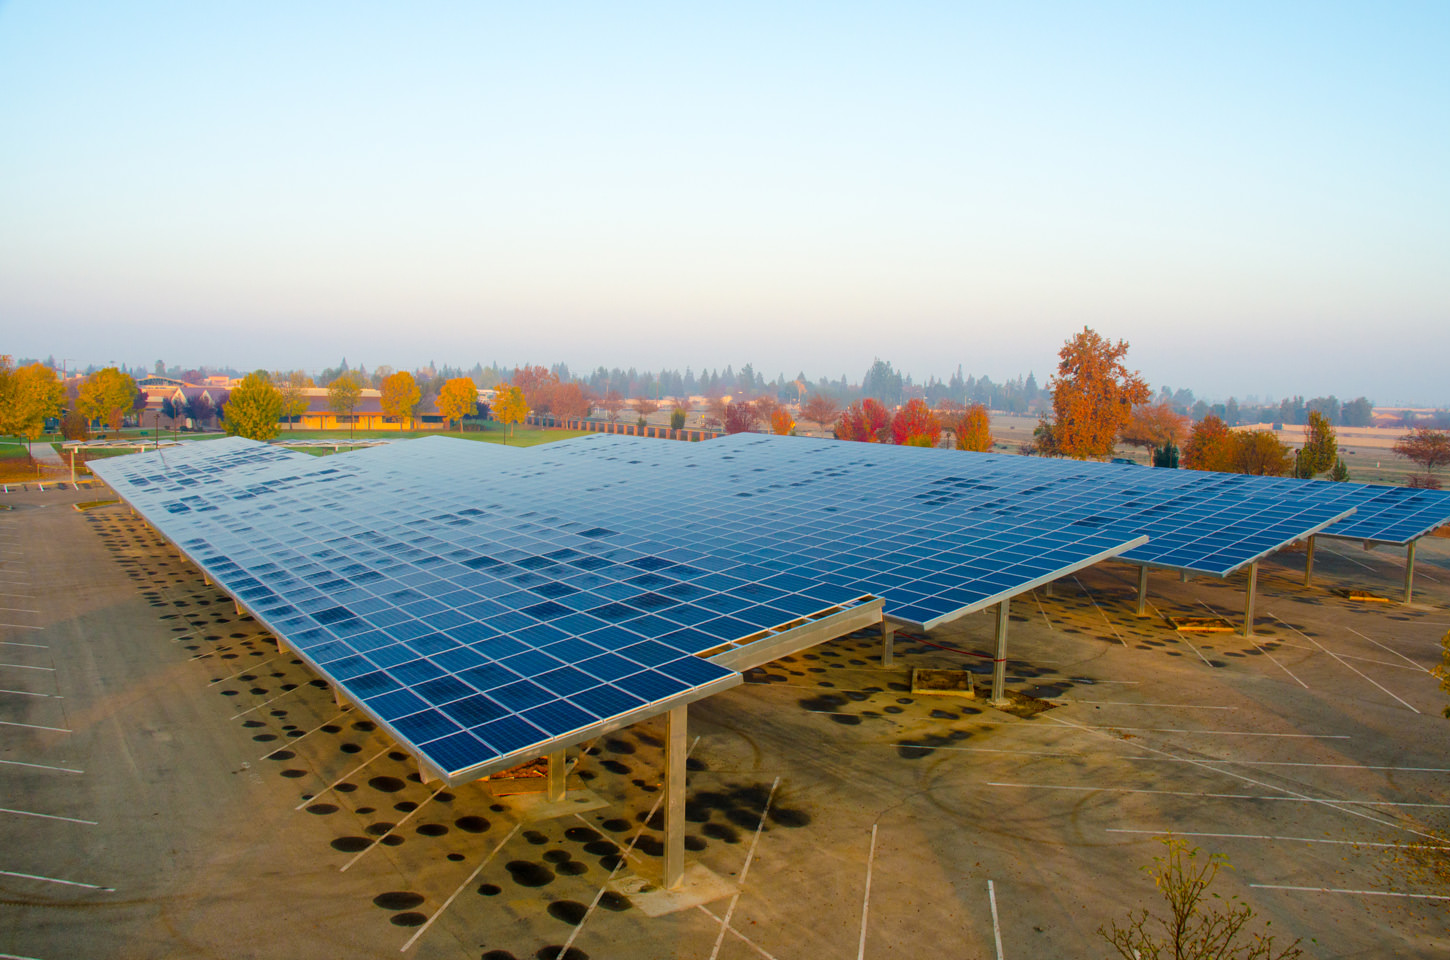 Private School California | 501 KW Developed by A-C Electric Company